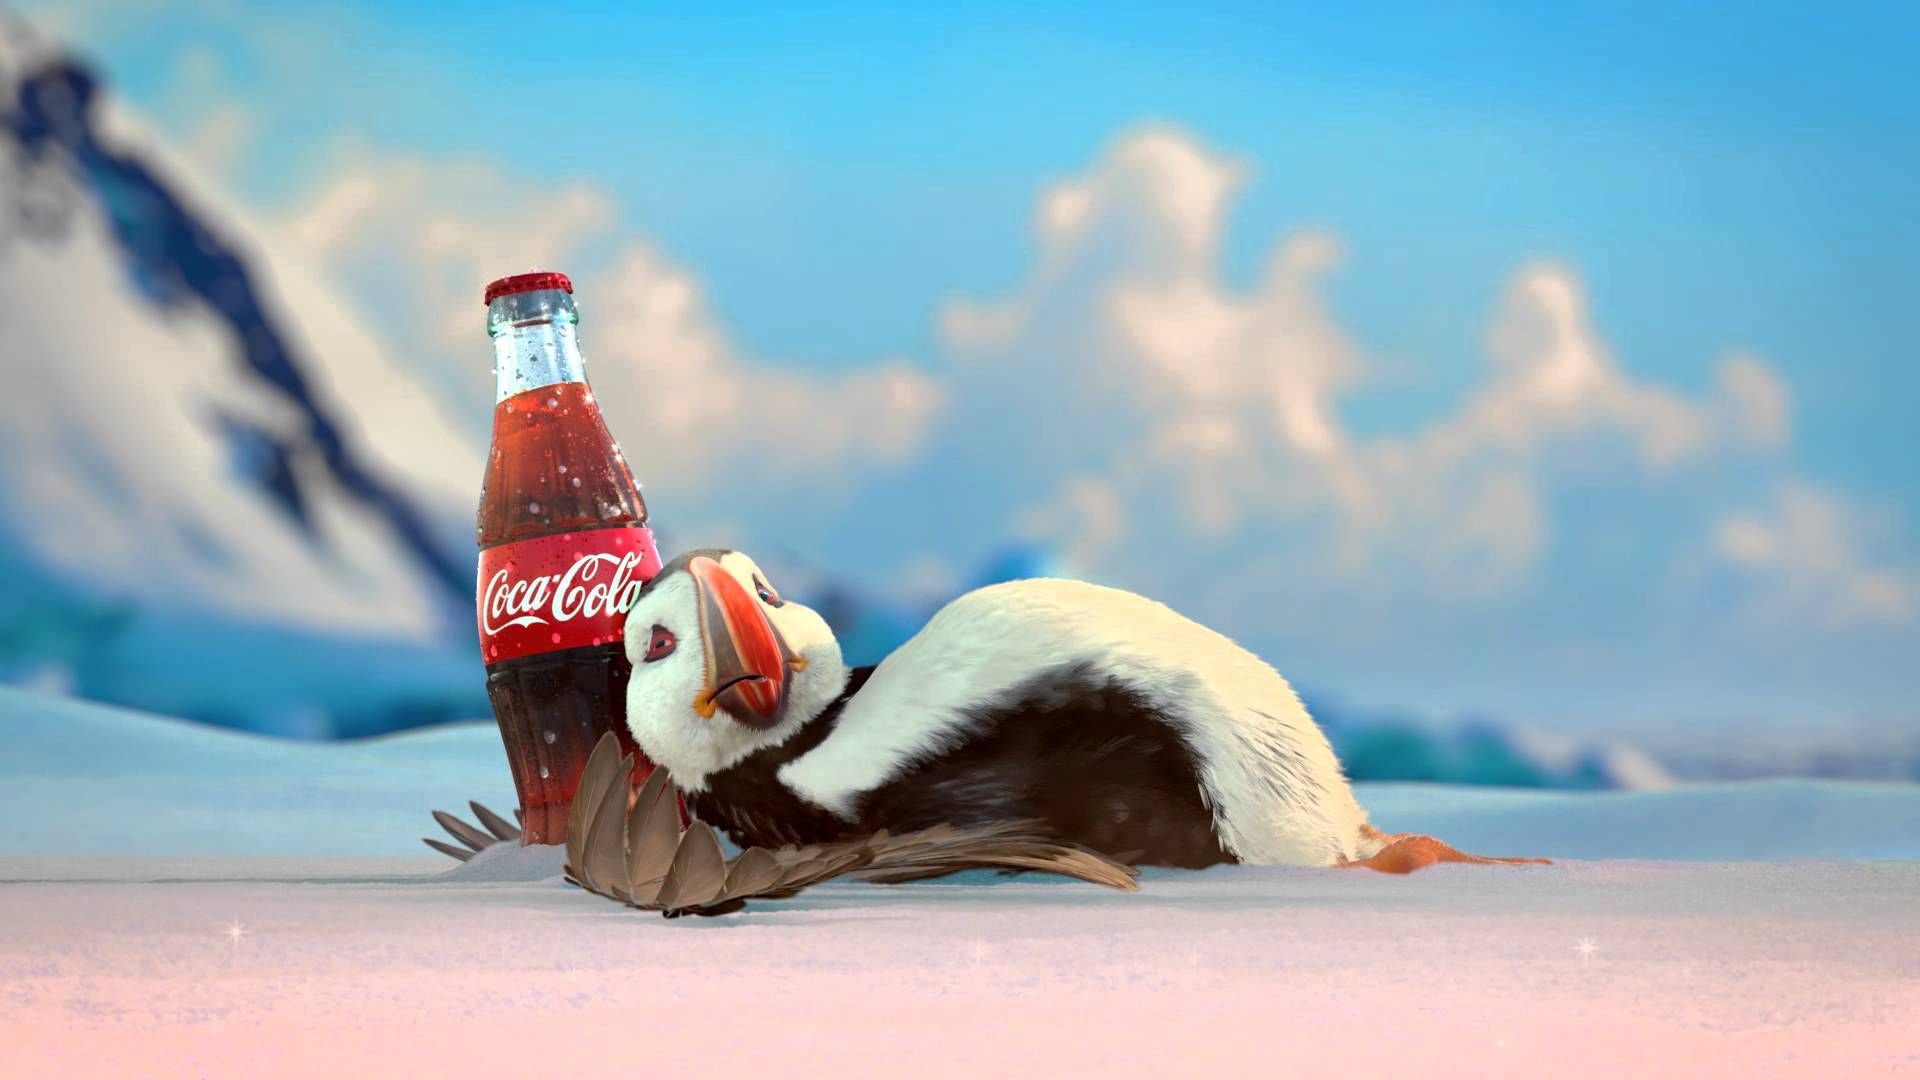 Coca Cola Song Weihnachten.Coca Cola 2013 Holiday Commercial Puffin Coke And A Smile Coca